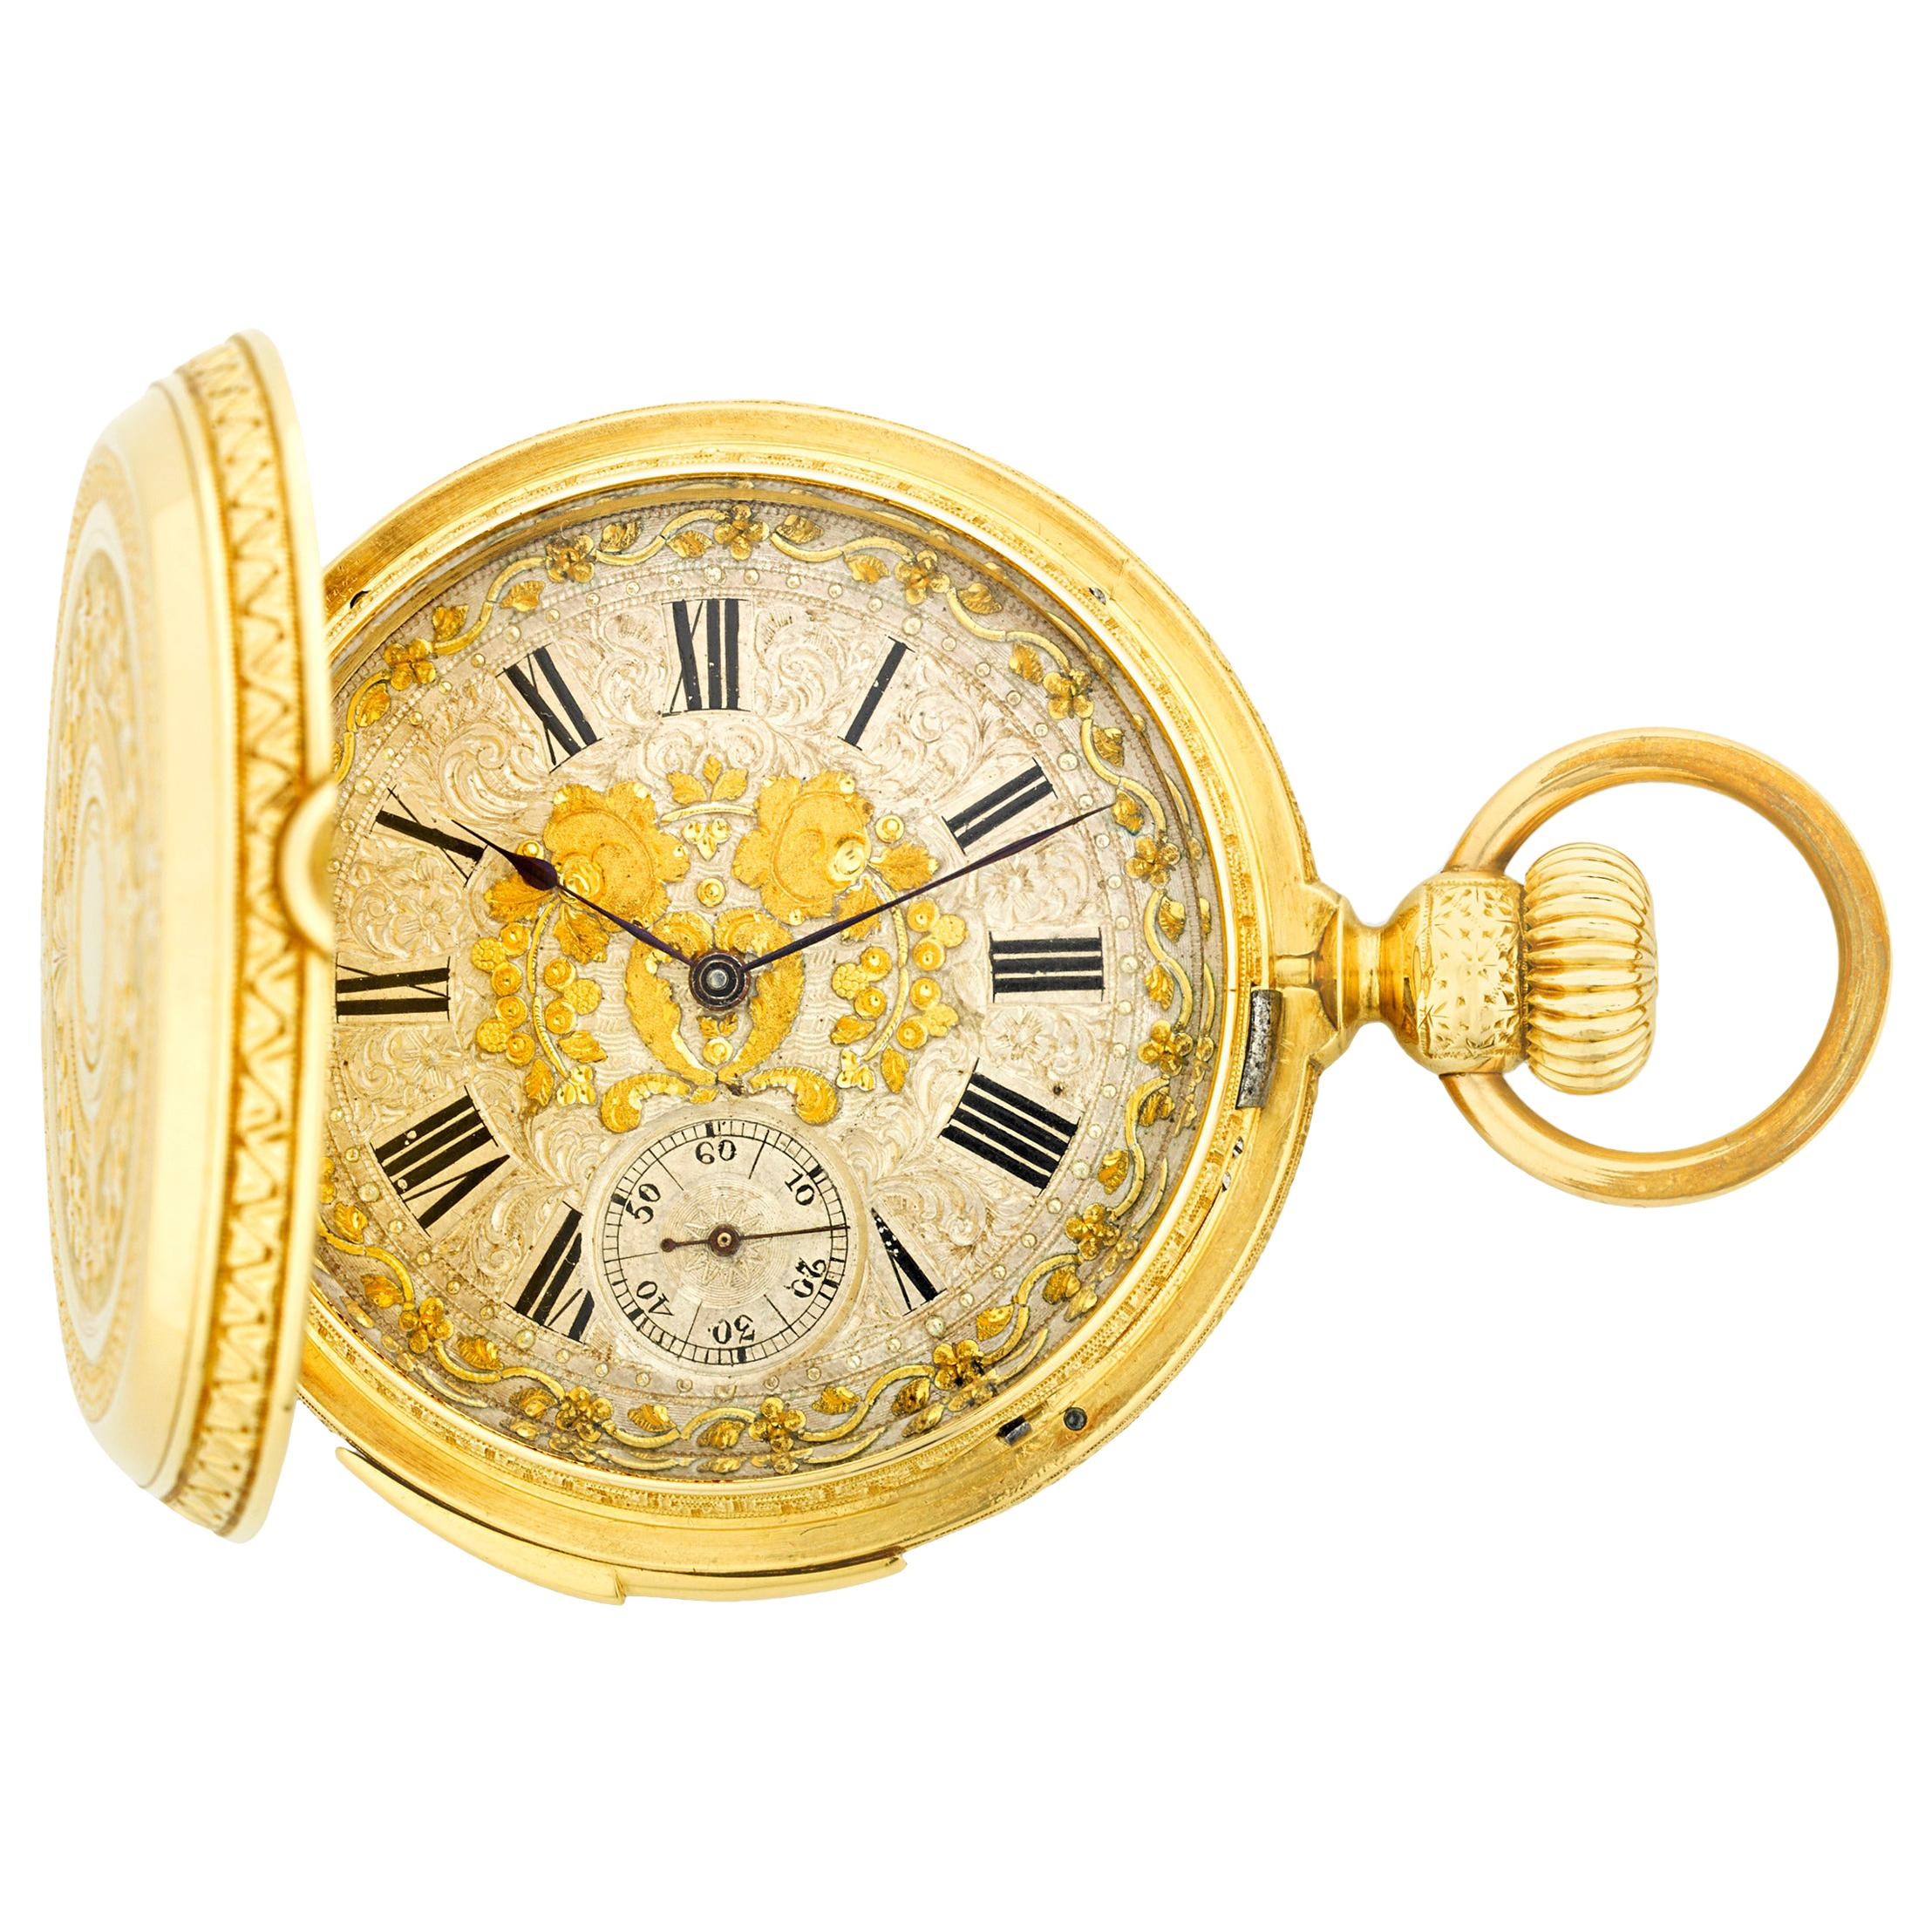 Gold Minute Repeater Swiss Pocket Watch